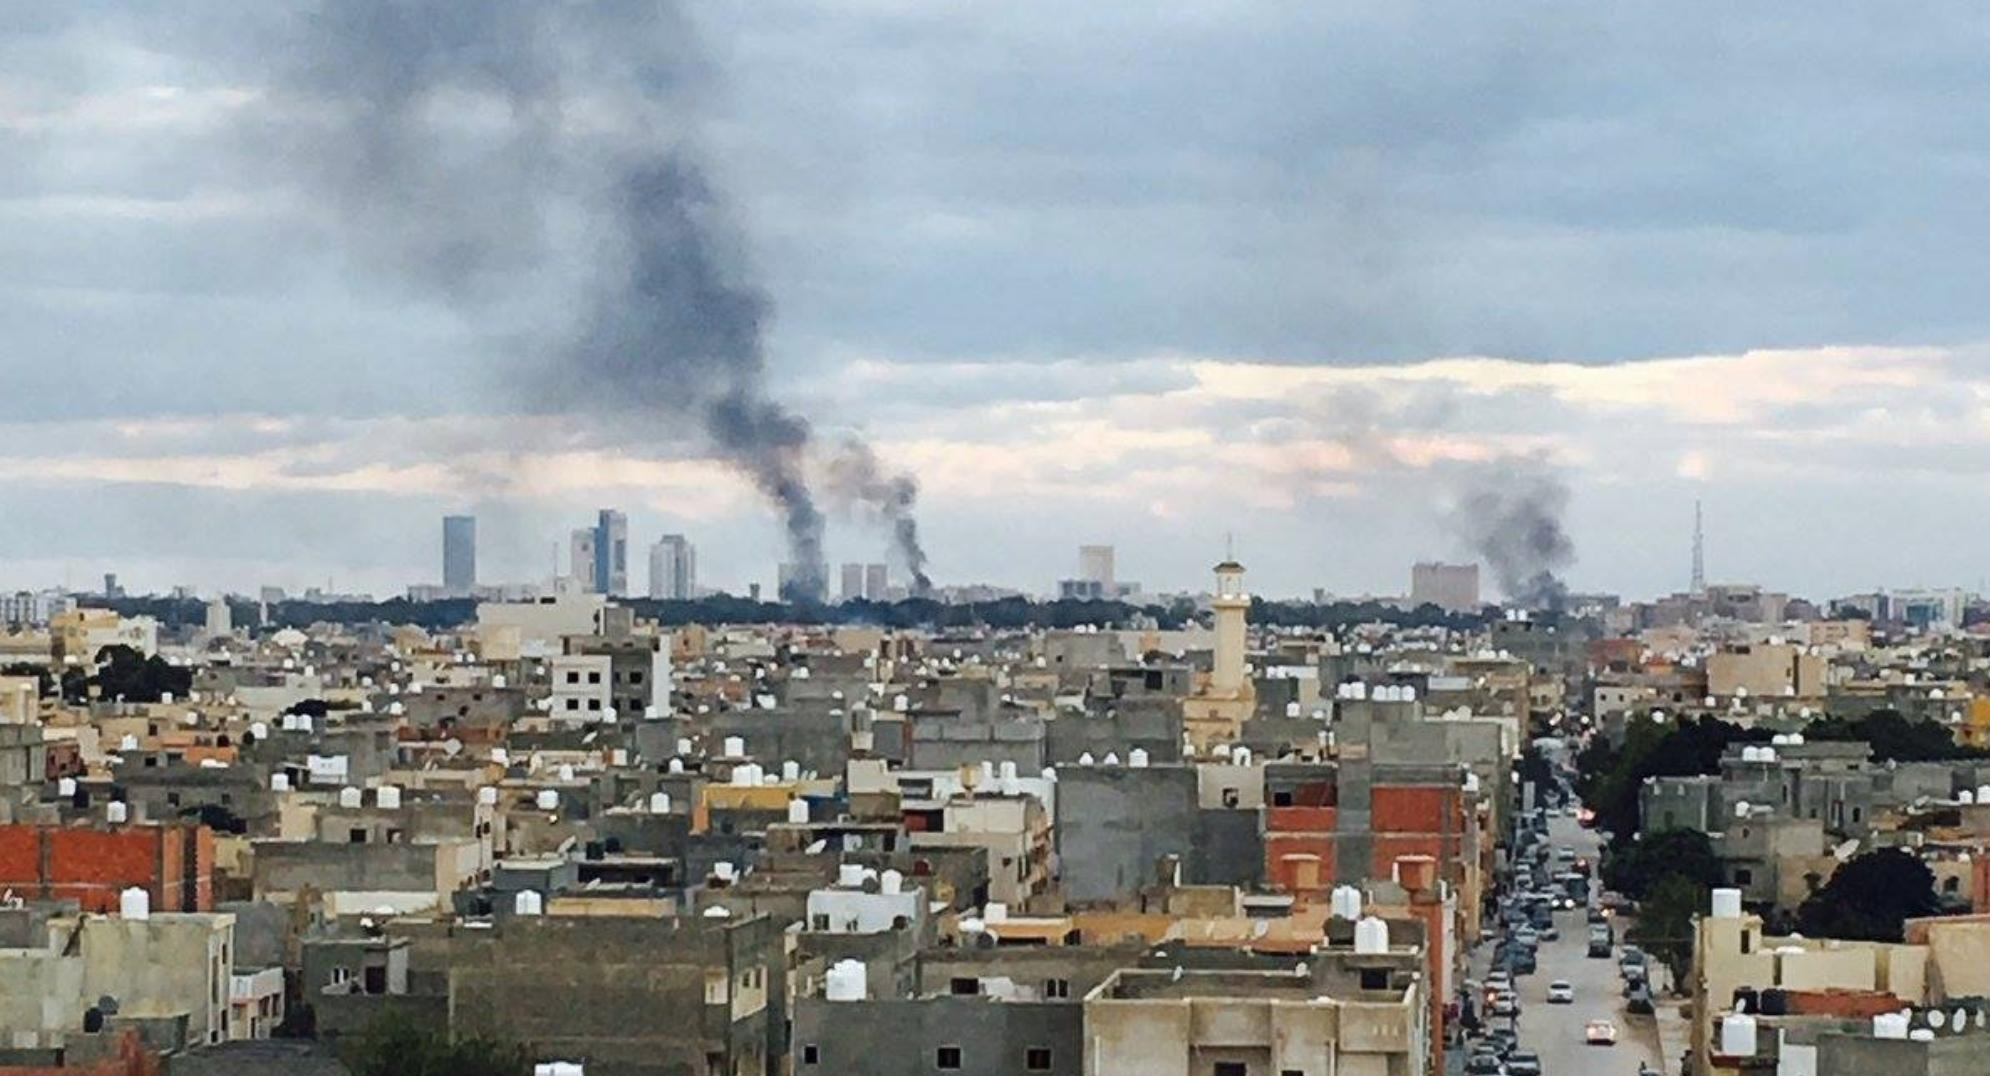 Over 30 People Killed In Clashes Erupted Between Militants In Libya's Tripoli